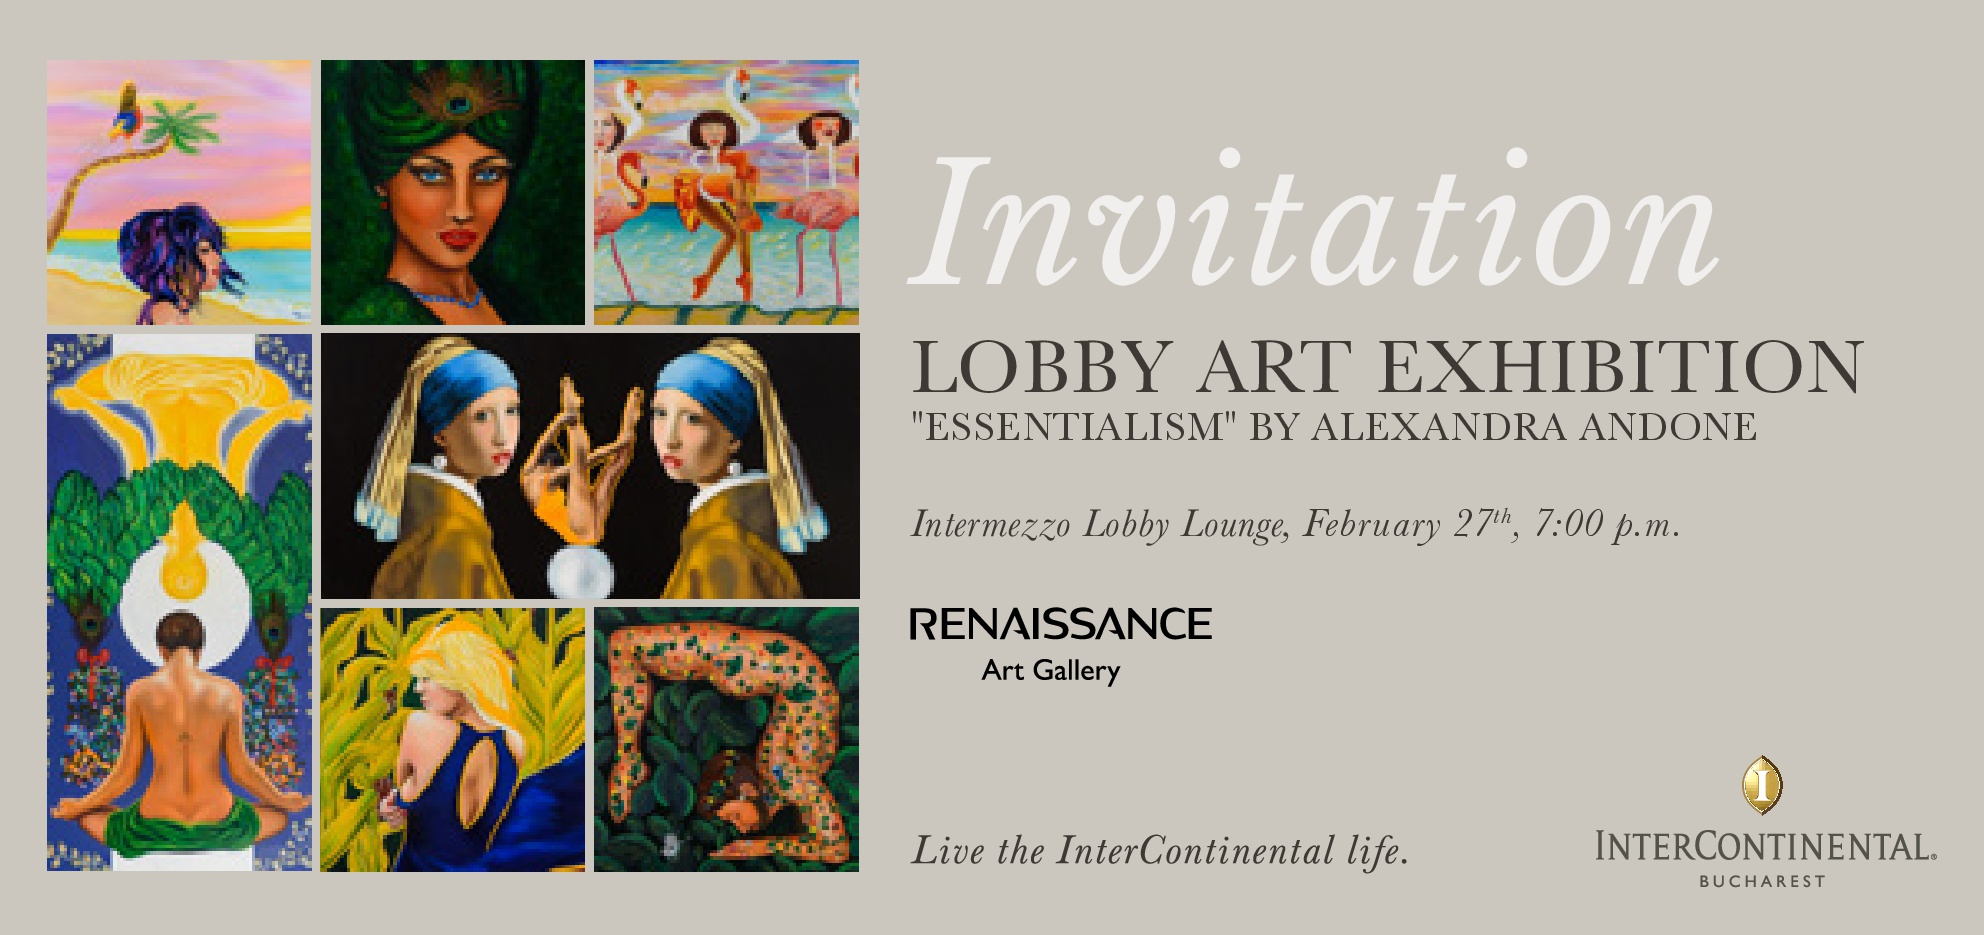 Essentialism by ALEXANDRA ANDONE, Painting Exhibition 27 FEBRUARY – 7 APRIL 2019 Intercontinental Hotel, Bucharest, Romania